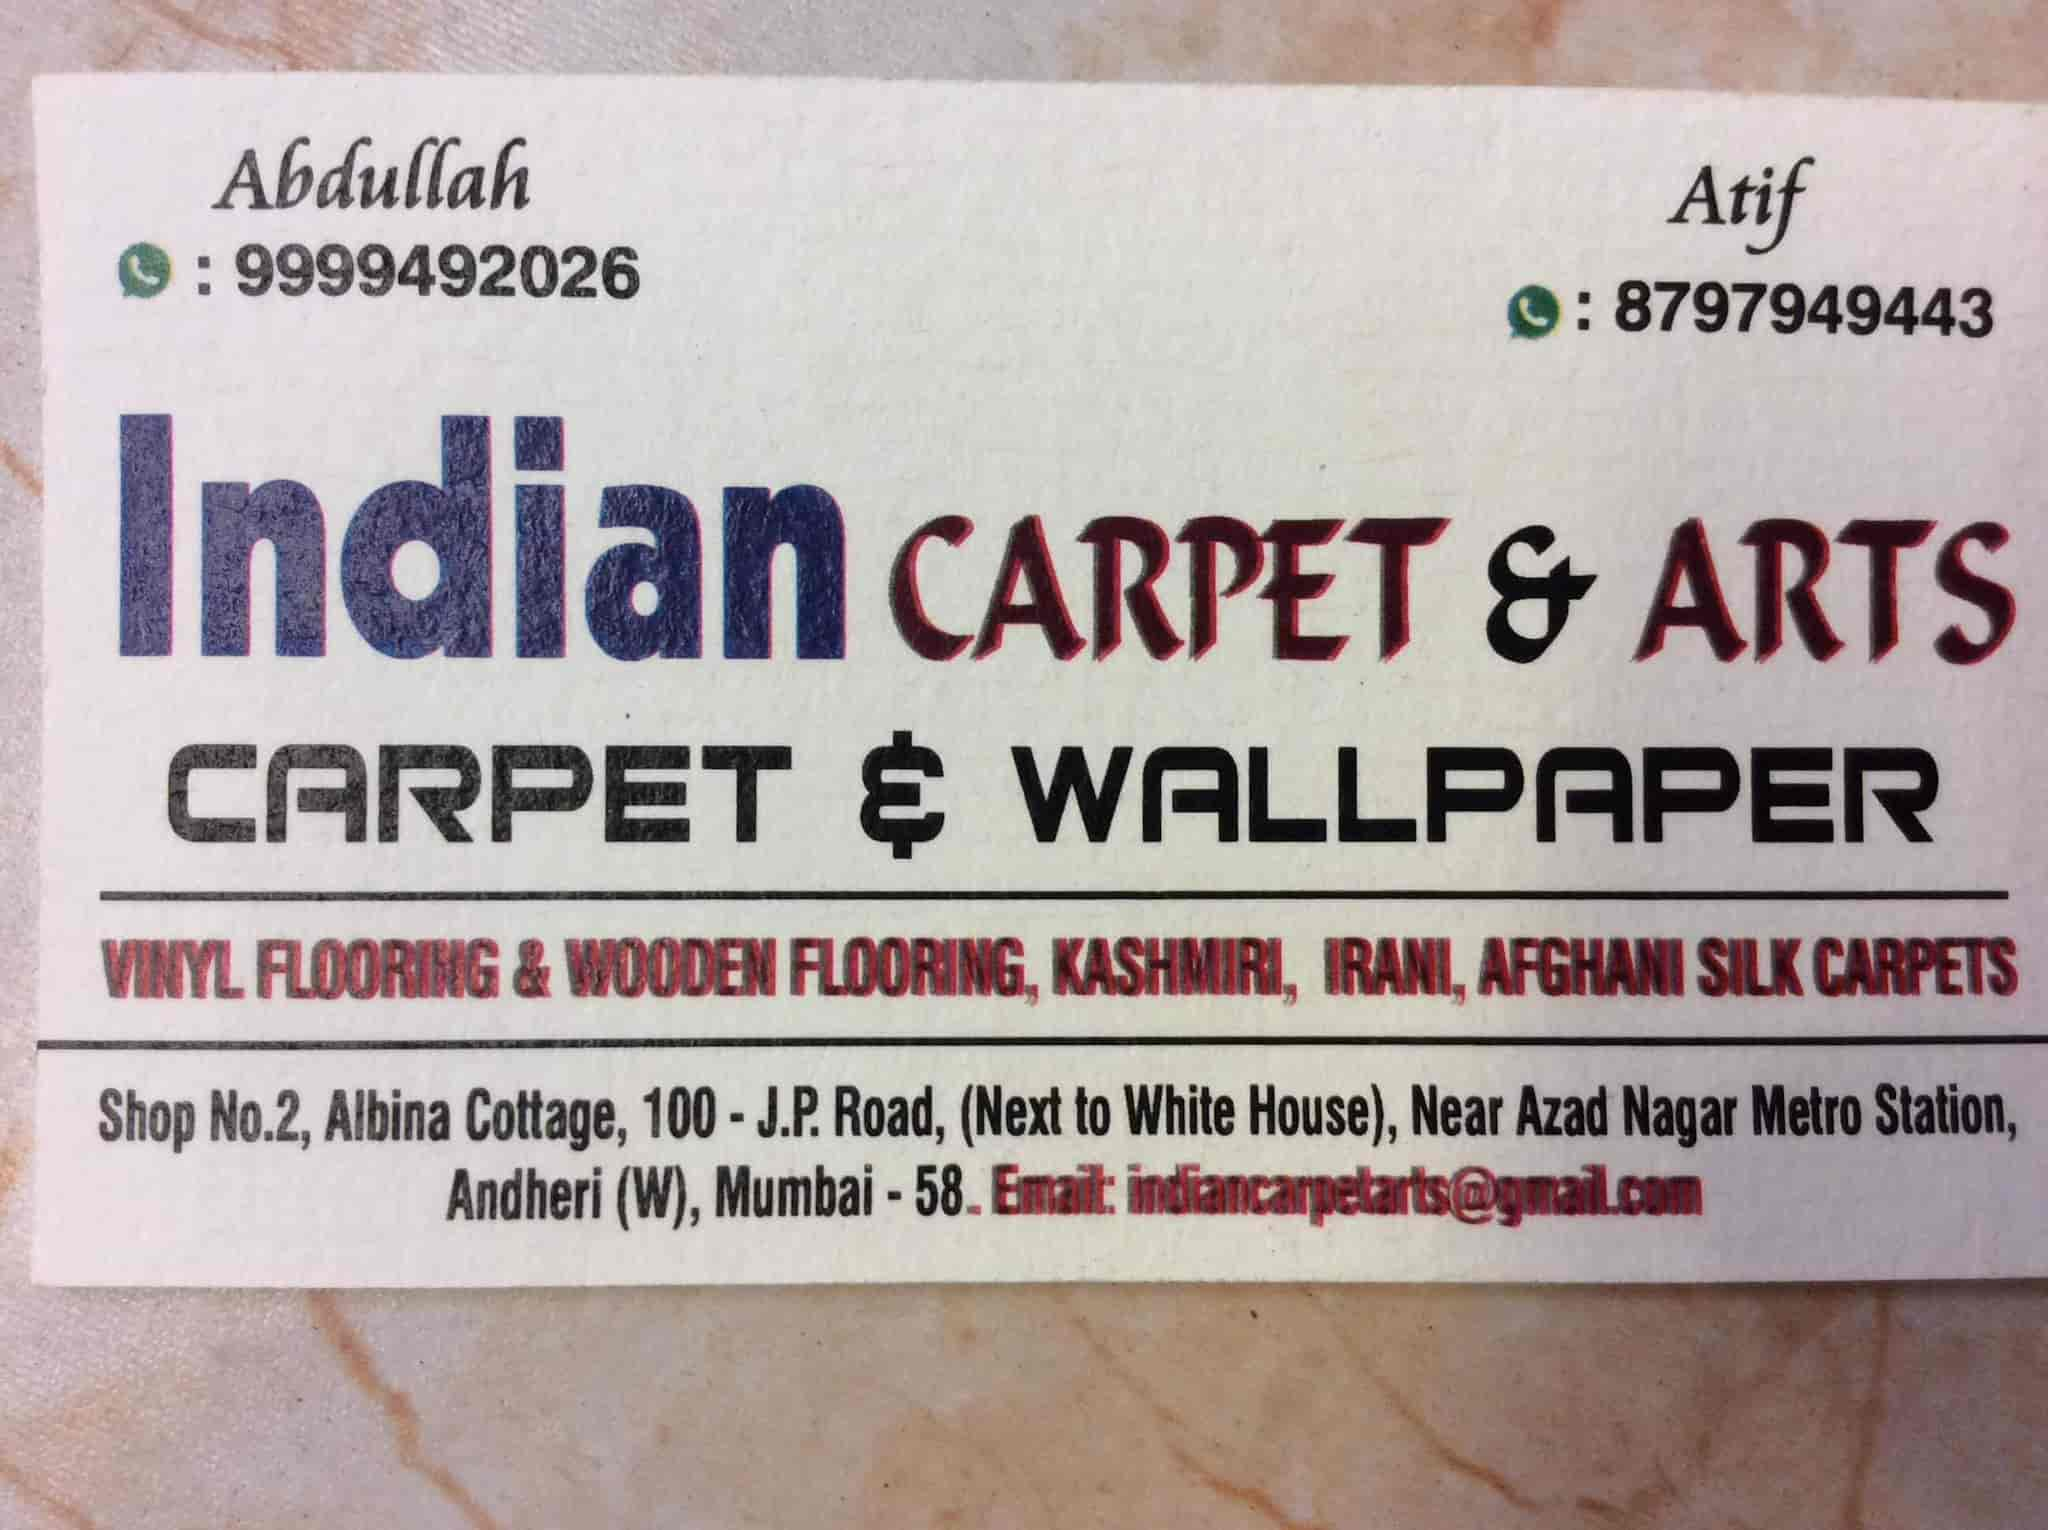 Abdullah Carpets 4500 Home Depot Carpet